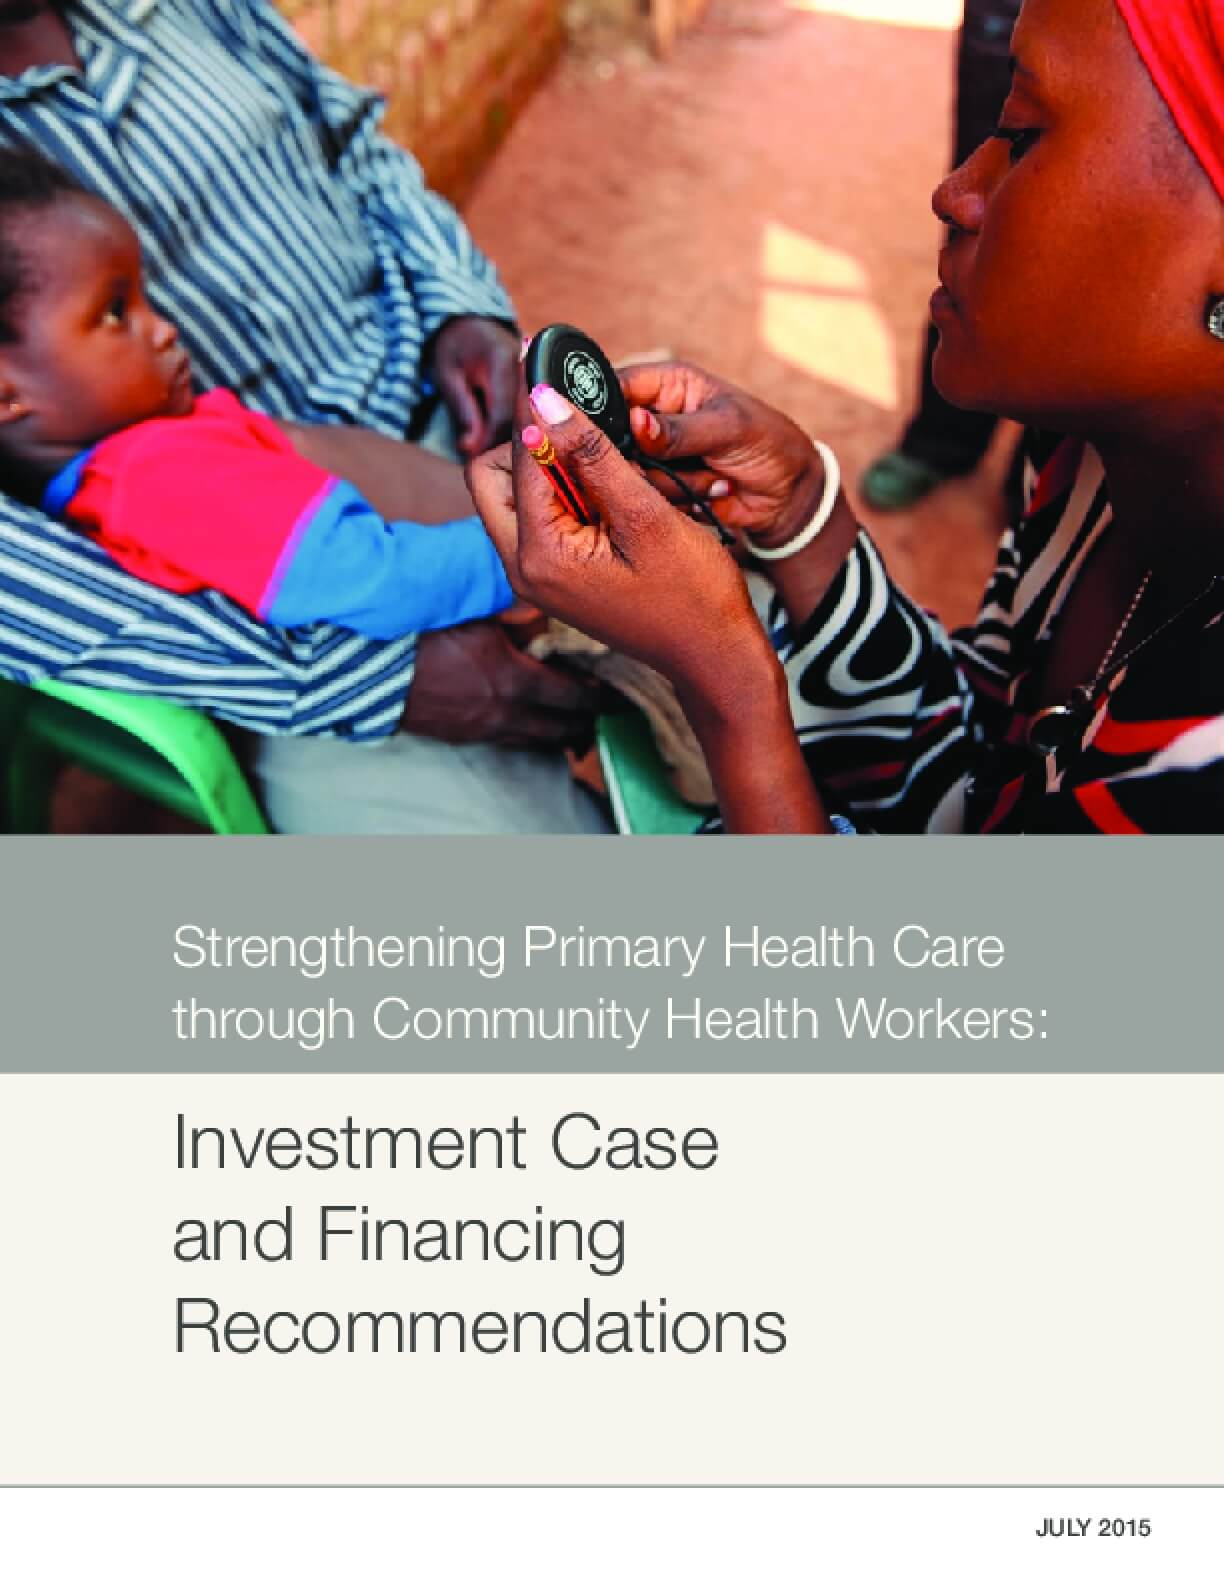 Strengthening Primary Health Care Through Community Health Workers: Investment Case And Financing Recommendations